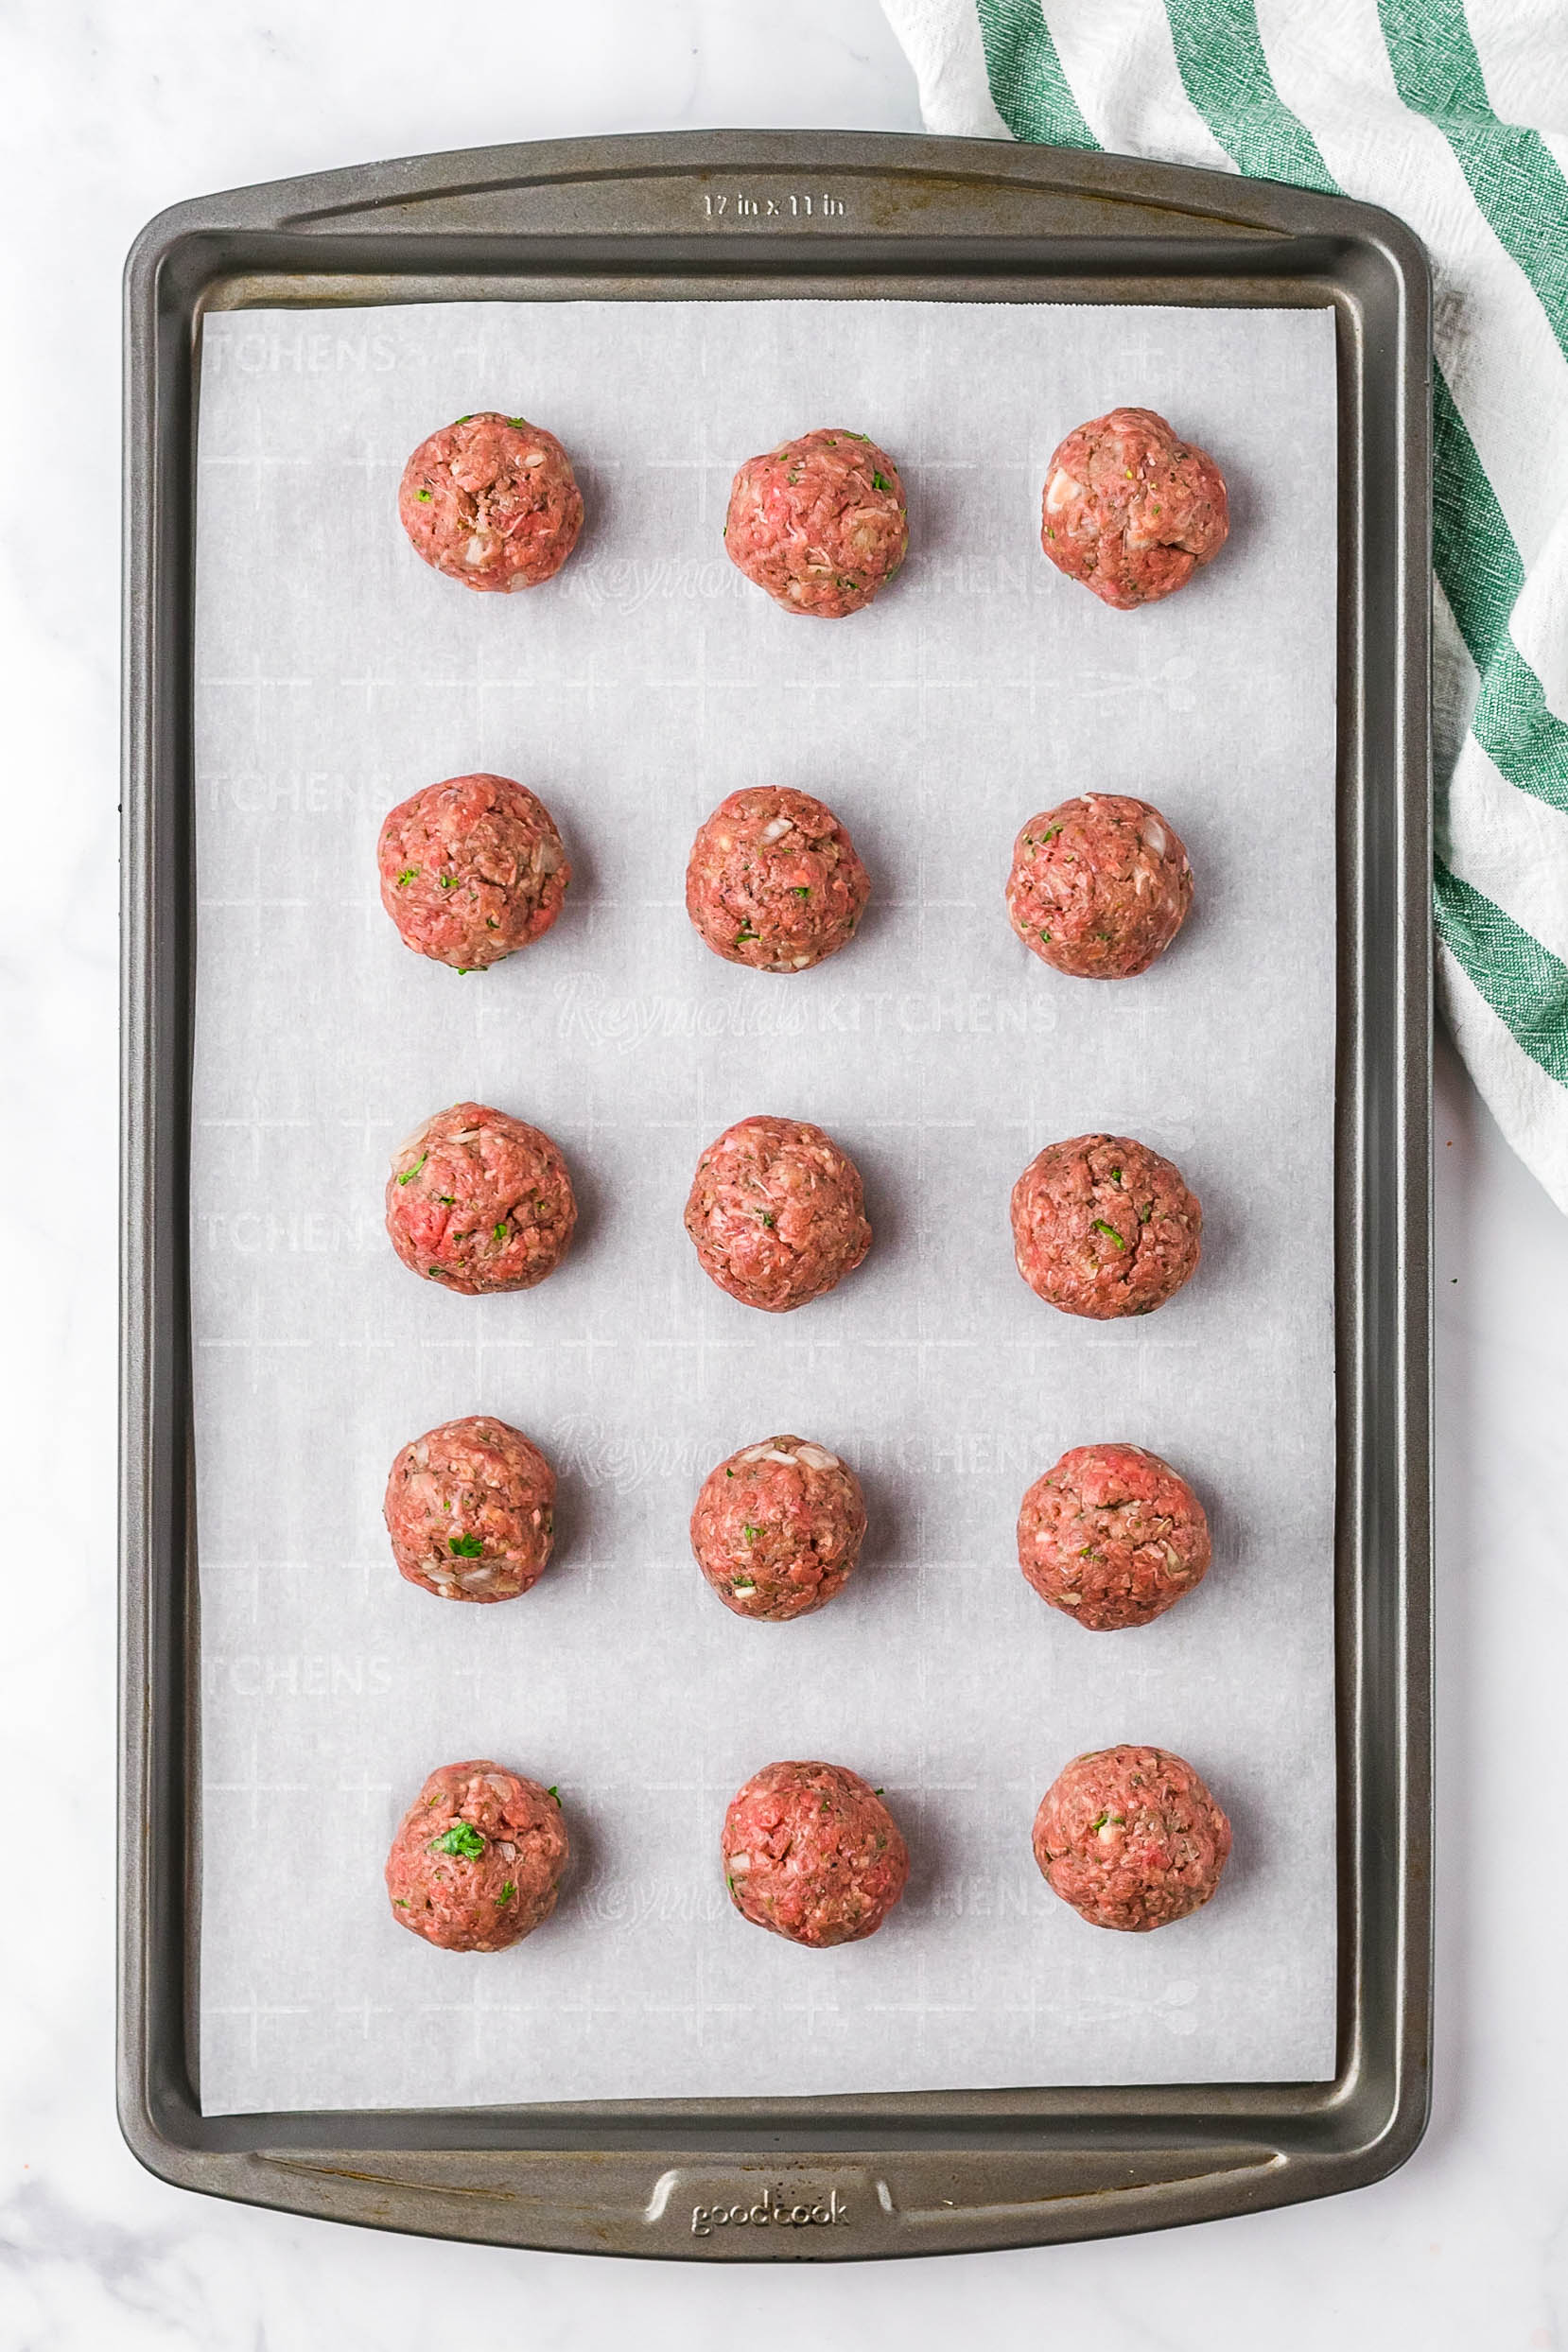 Uncooked Swedish Meatballs Assembled on a Baking Sheet